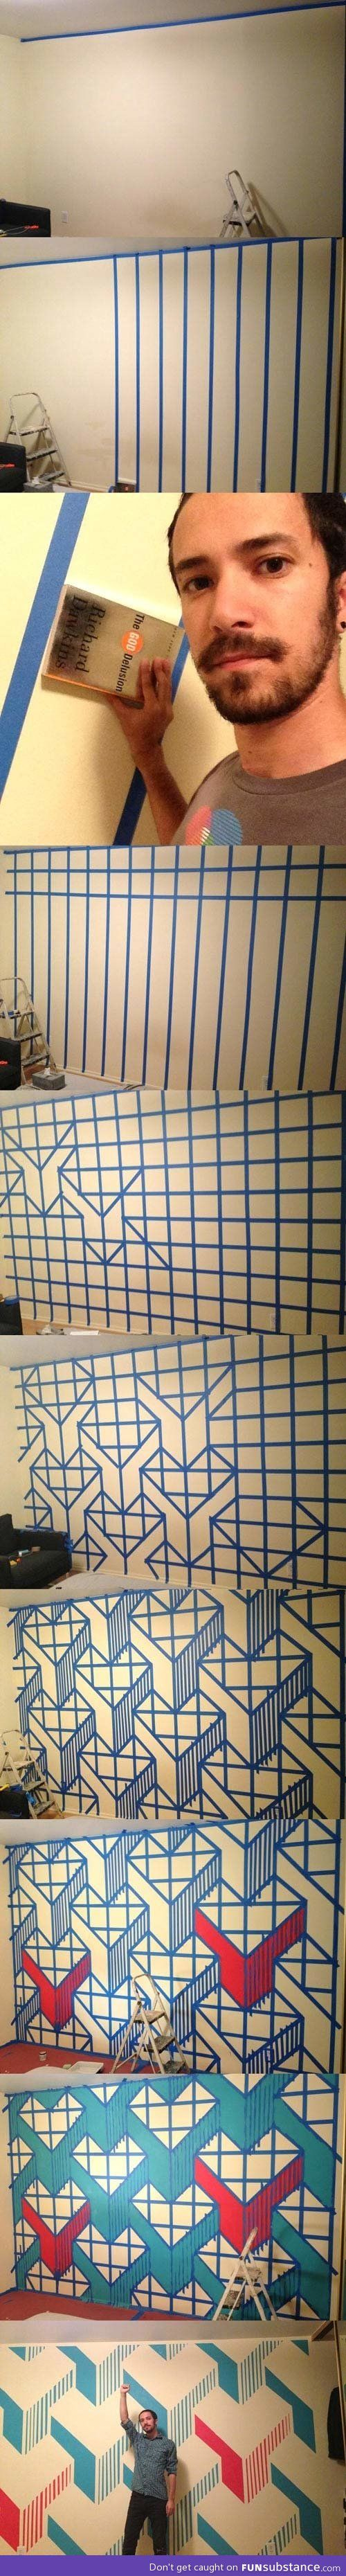 Awesome wall design